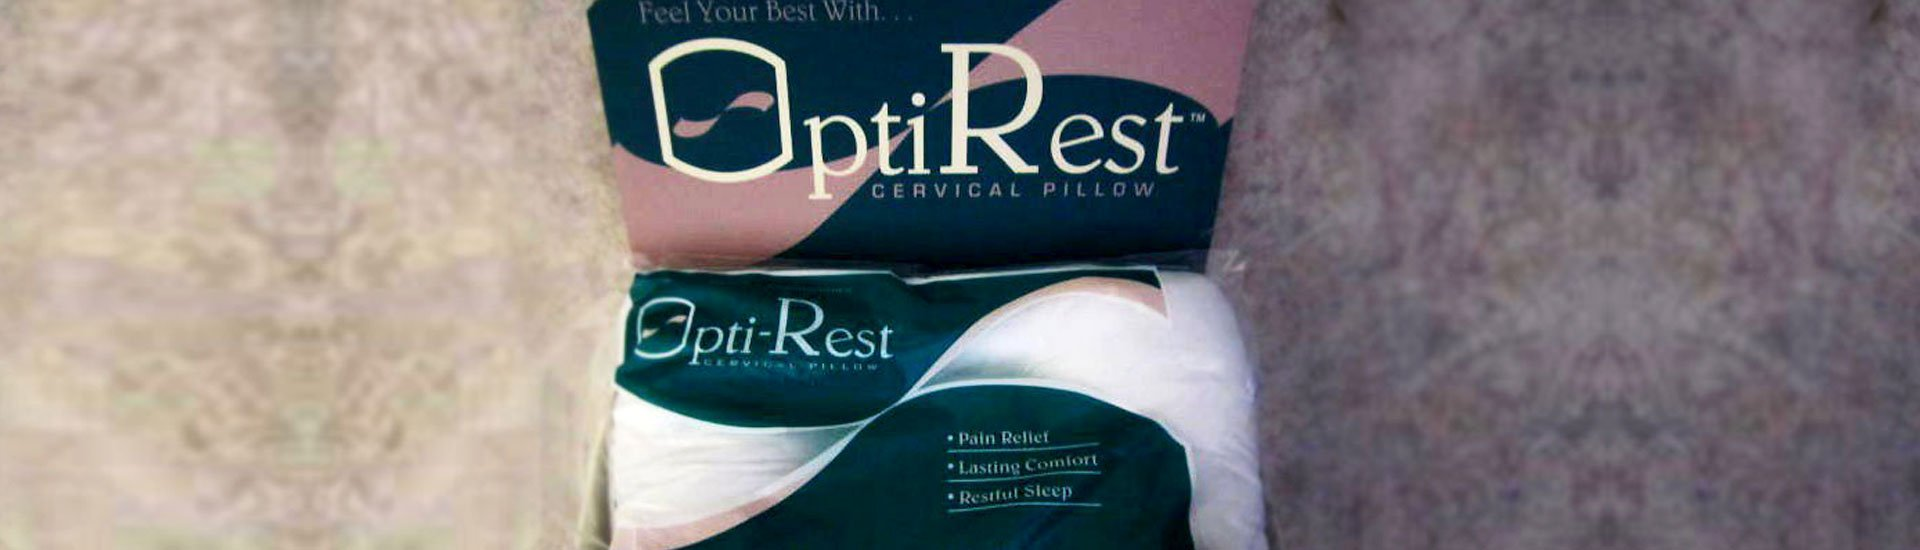 optirest pillow